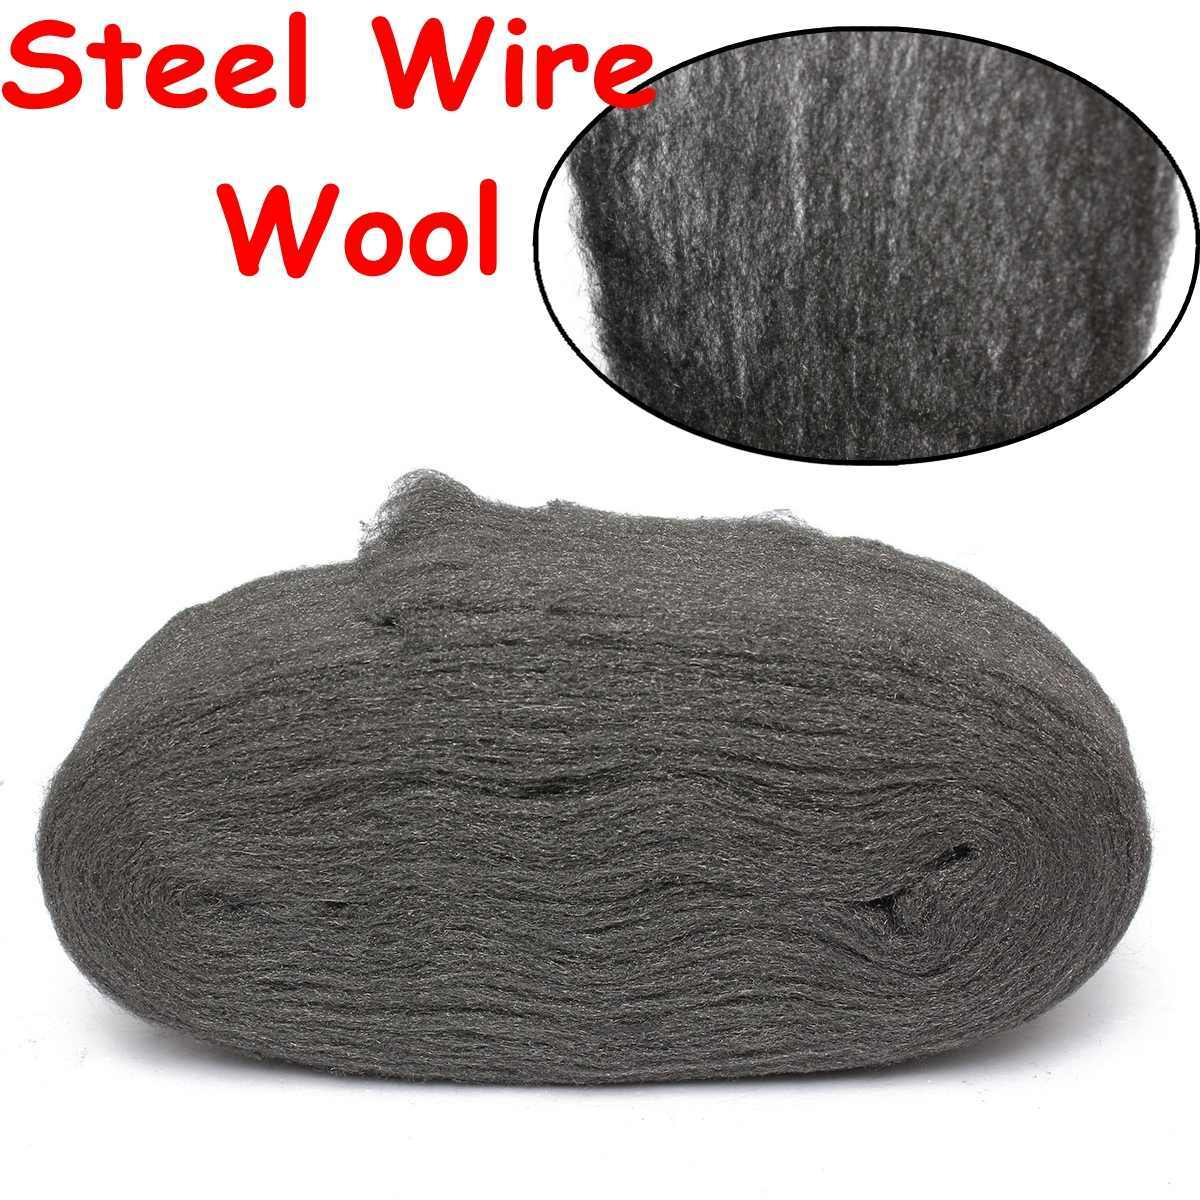 3.3 m Steel Wire Wool Grade 0000 For Polishing Cleaning Removing Remover Non Crumble